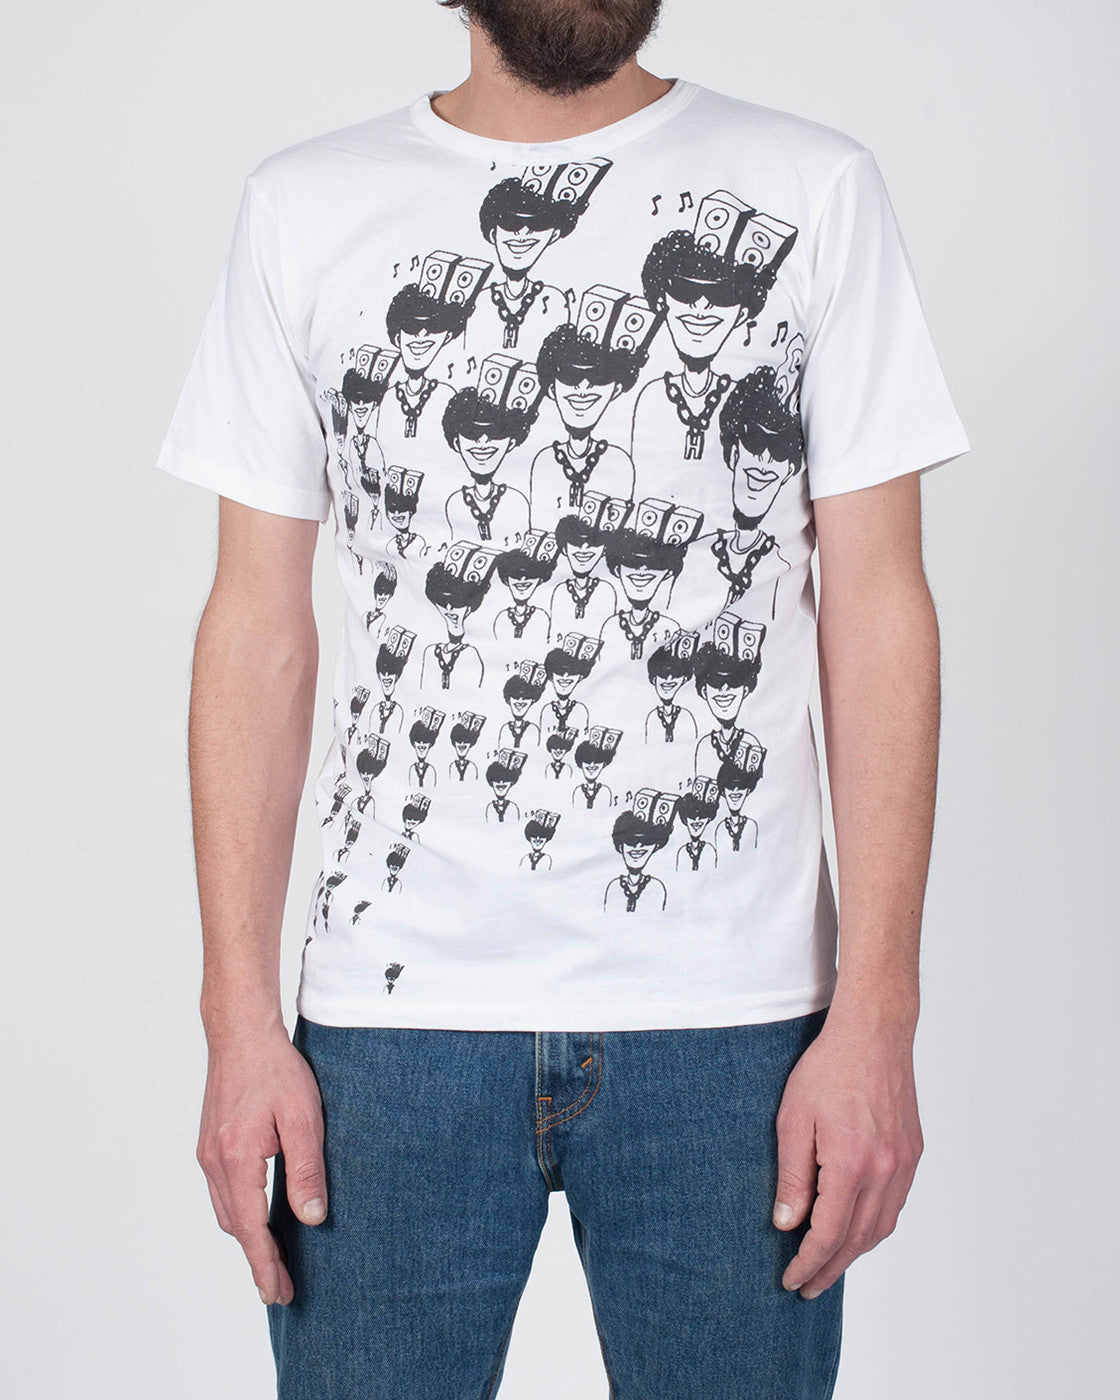 Speakerhead T-Shirt